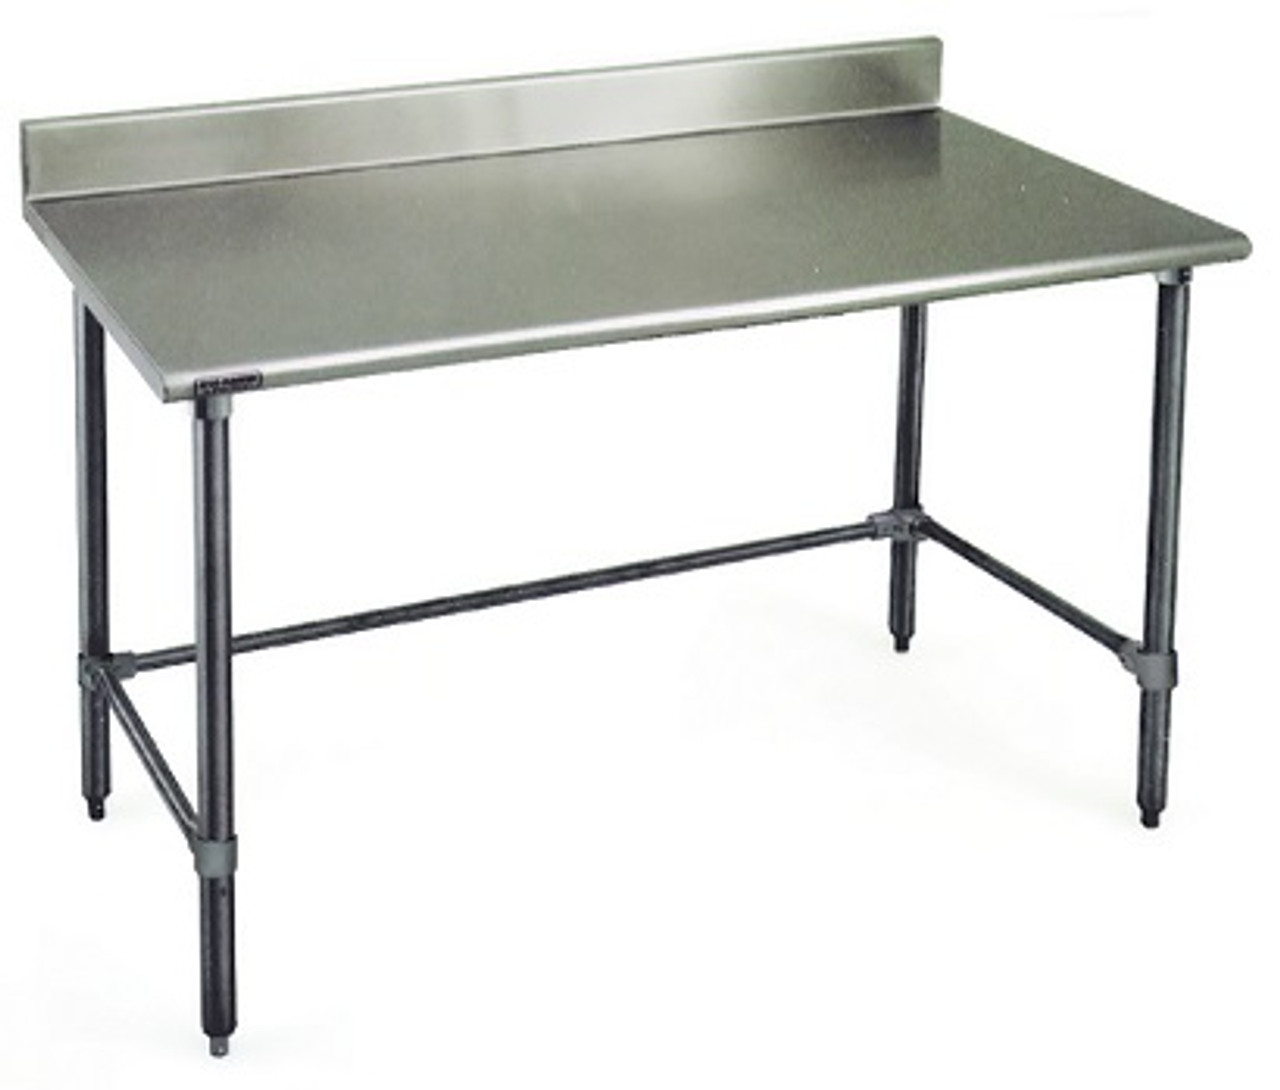 Stainless Steel Work Table - Eagle, Budget Kitchen Grade Stainless Steel,  16/430 Construction, NSF, 24\